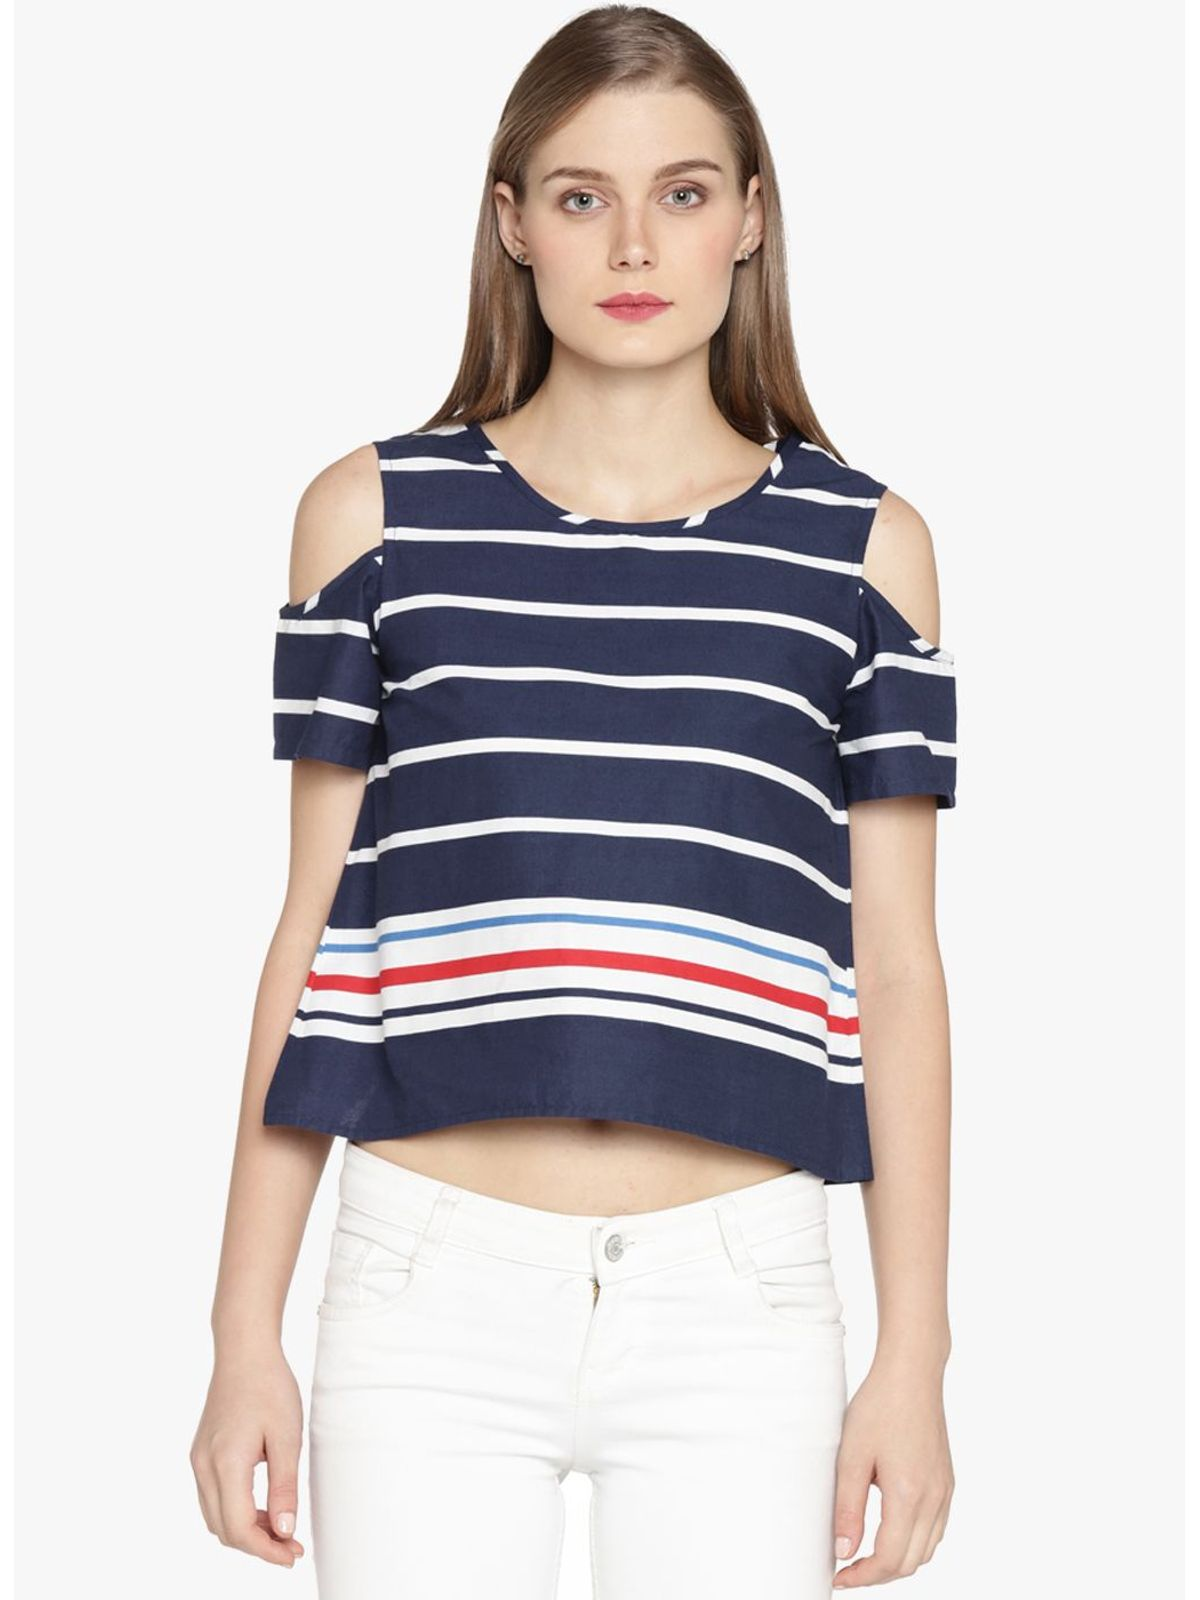 KAIRA STRIPE COLD SHOULDER TOP